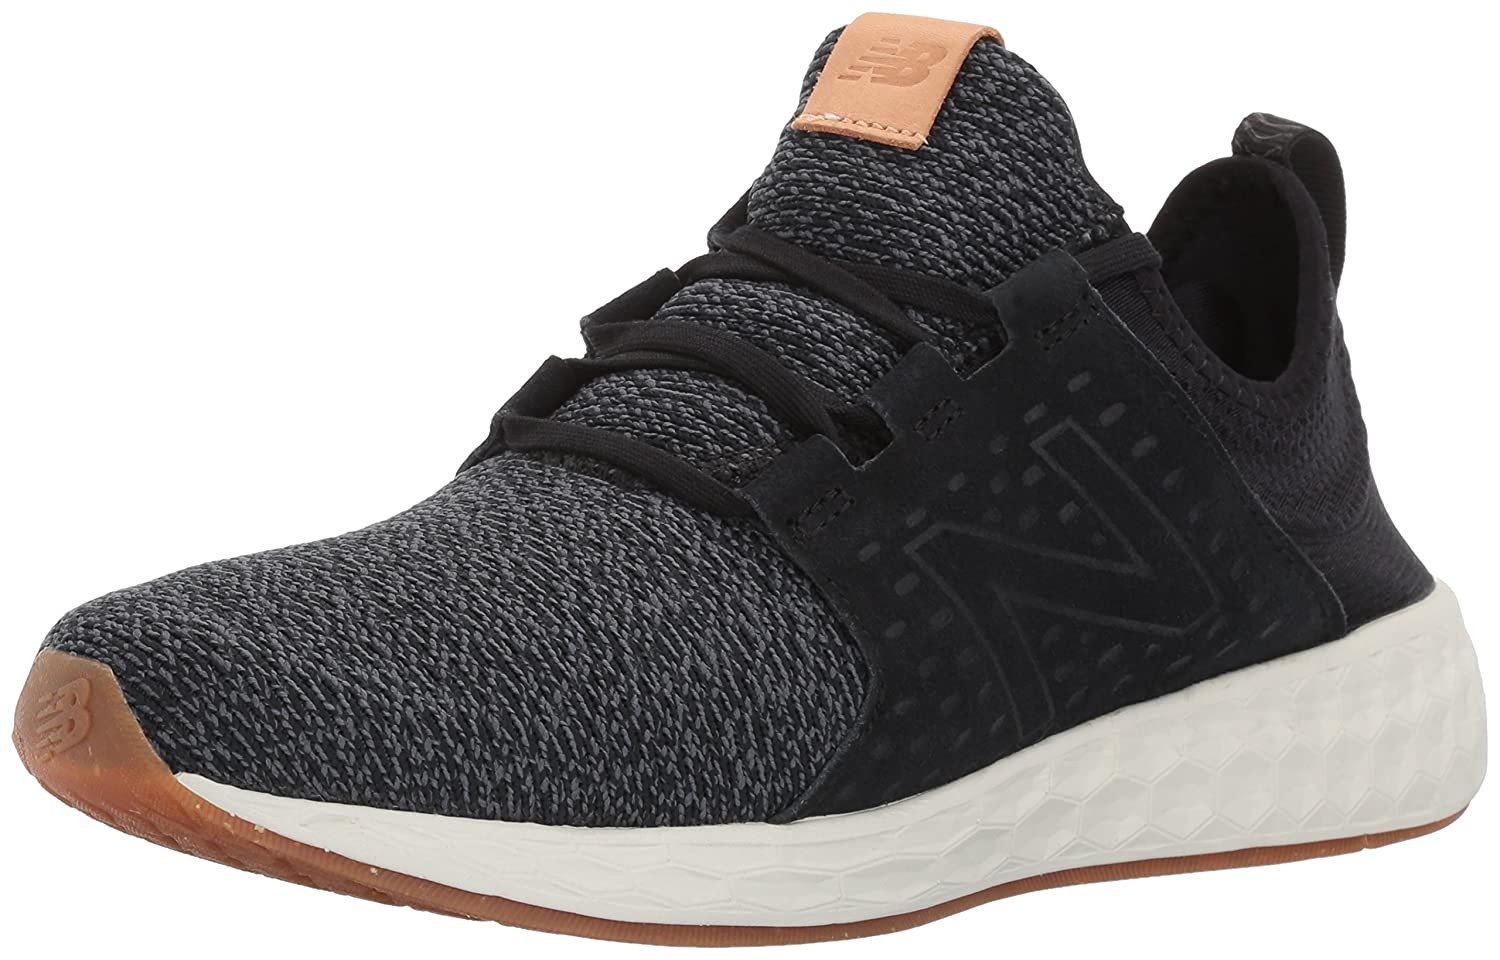 New Balance Men's Fresh Foam Cruz Running Shoe B01M0OOX1P 8 D(M) US|Black/Sea Salt